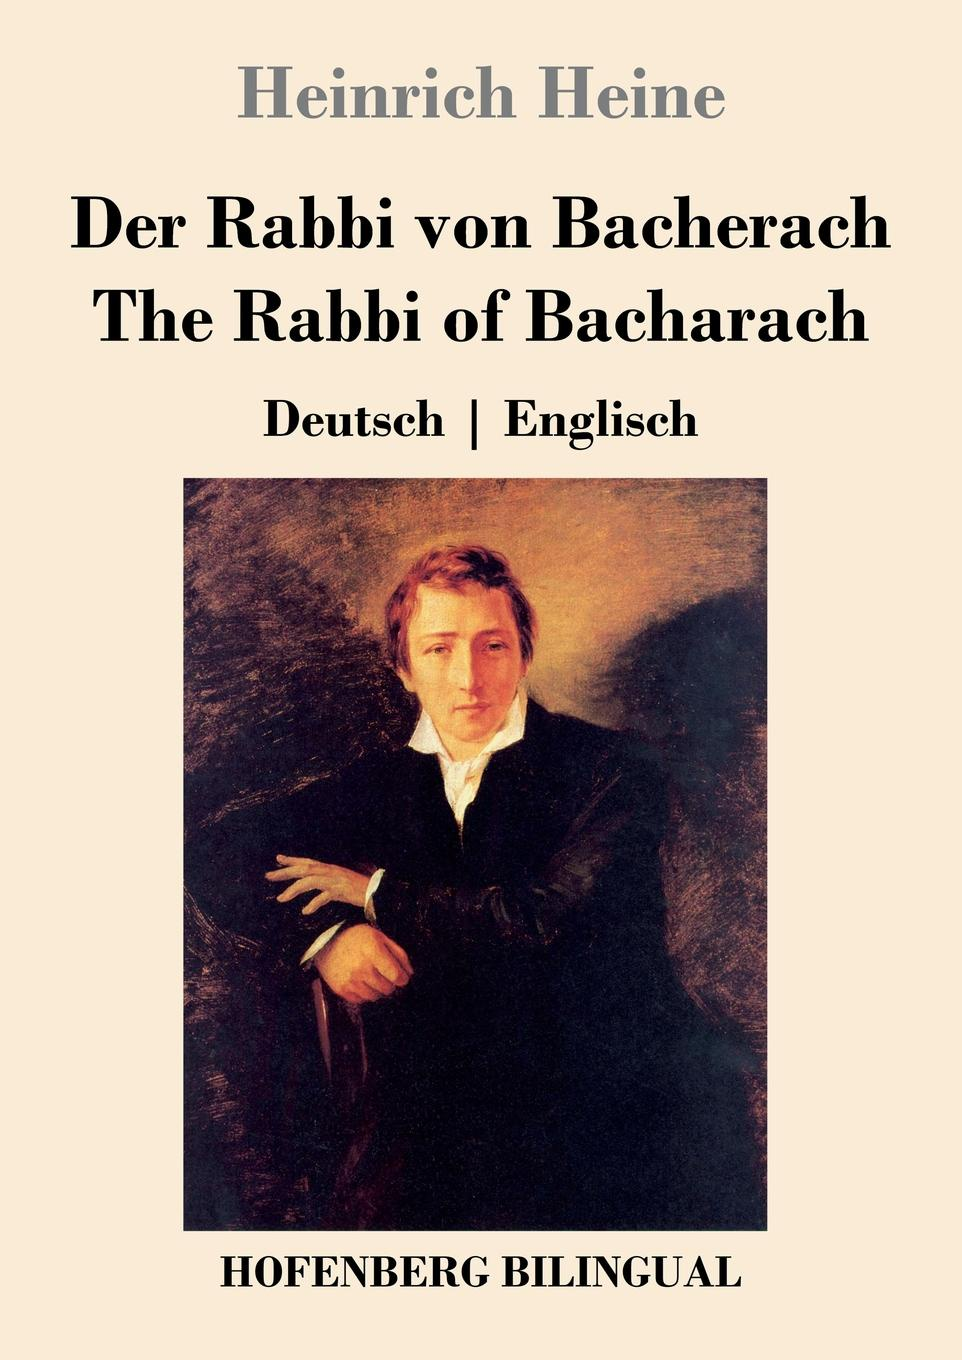 Heinrich Heine Der Rabbi von Bacherach / The Rabbi of Bacharach